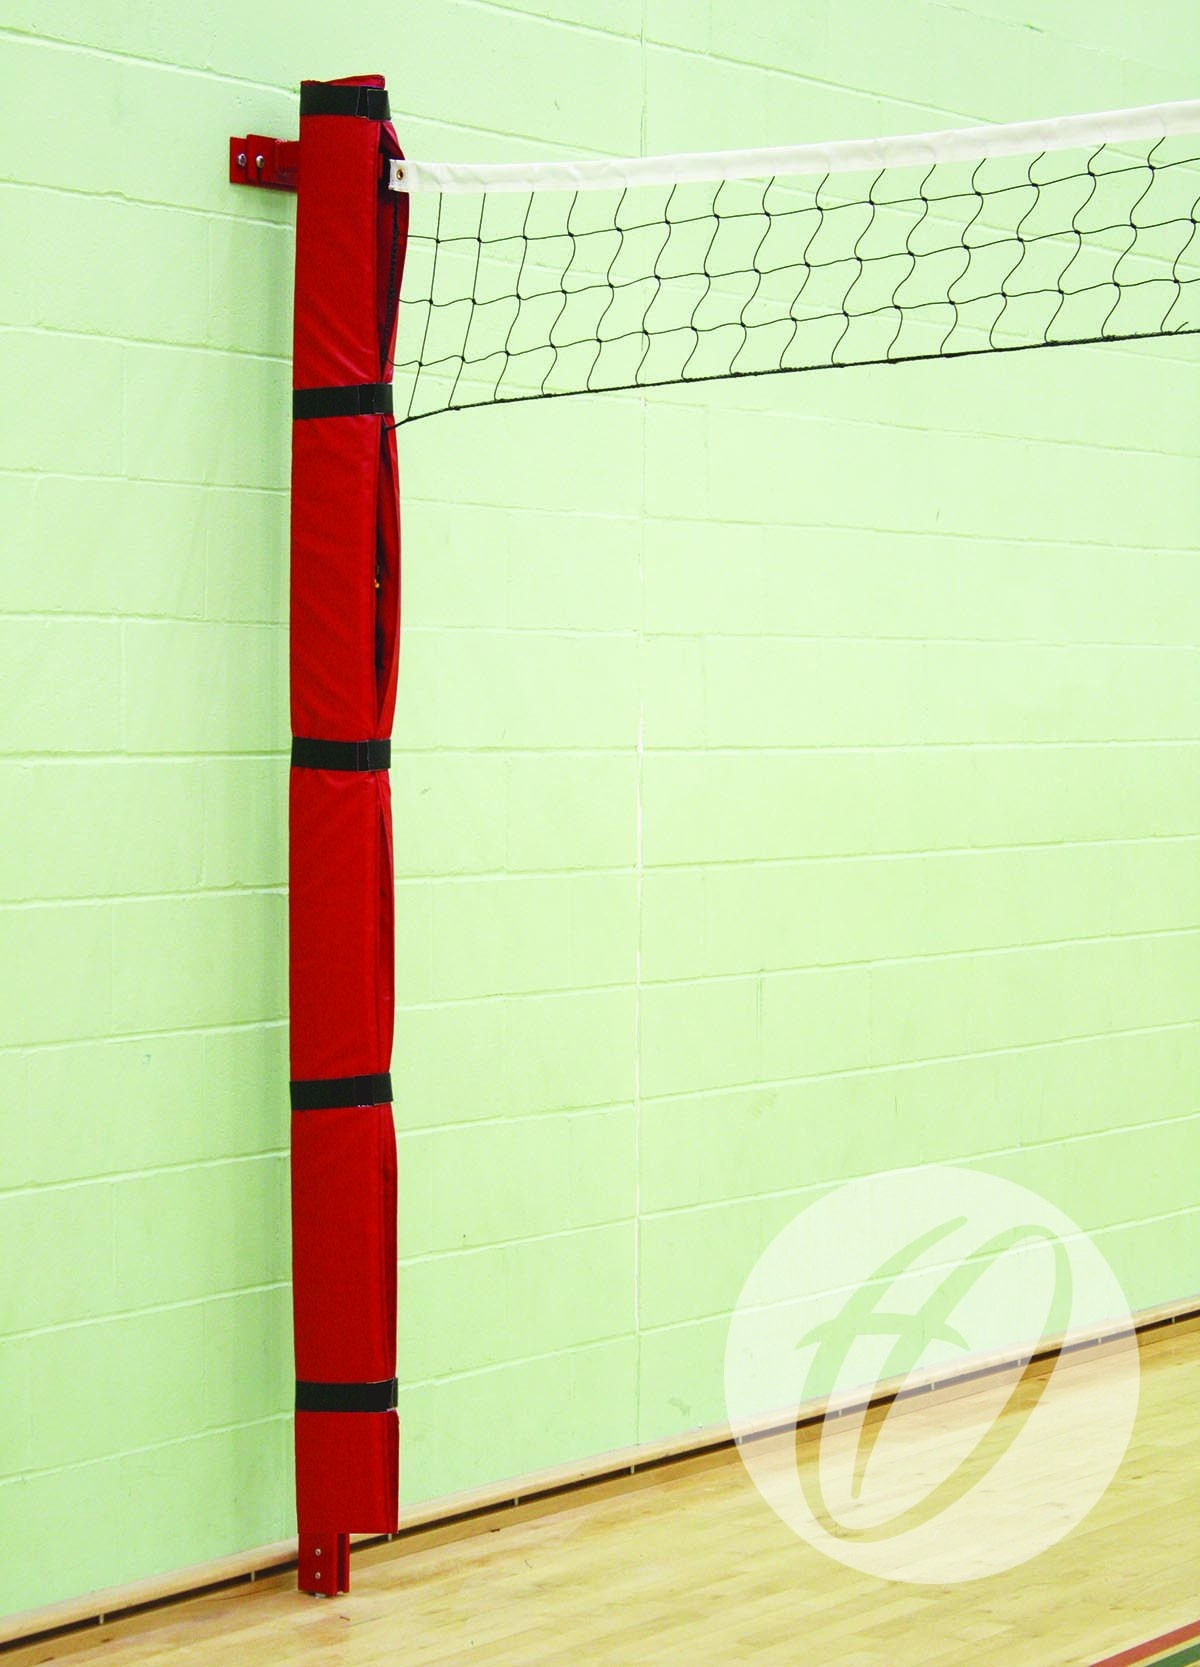 Wall Mounted Volleyball Posts Harrod Sport